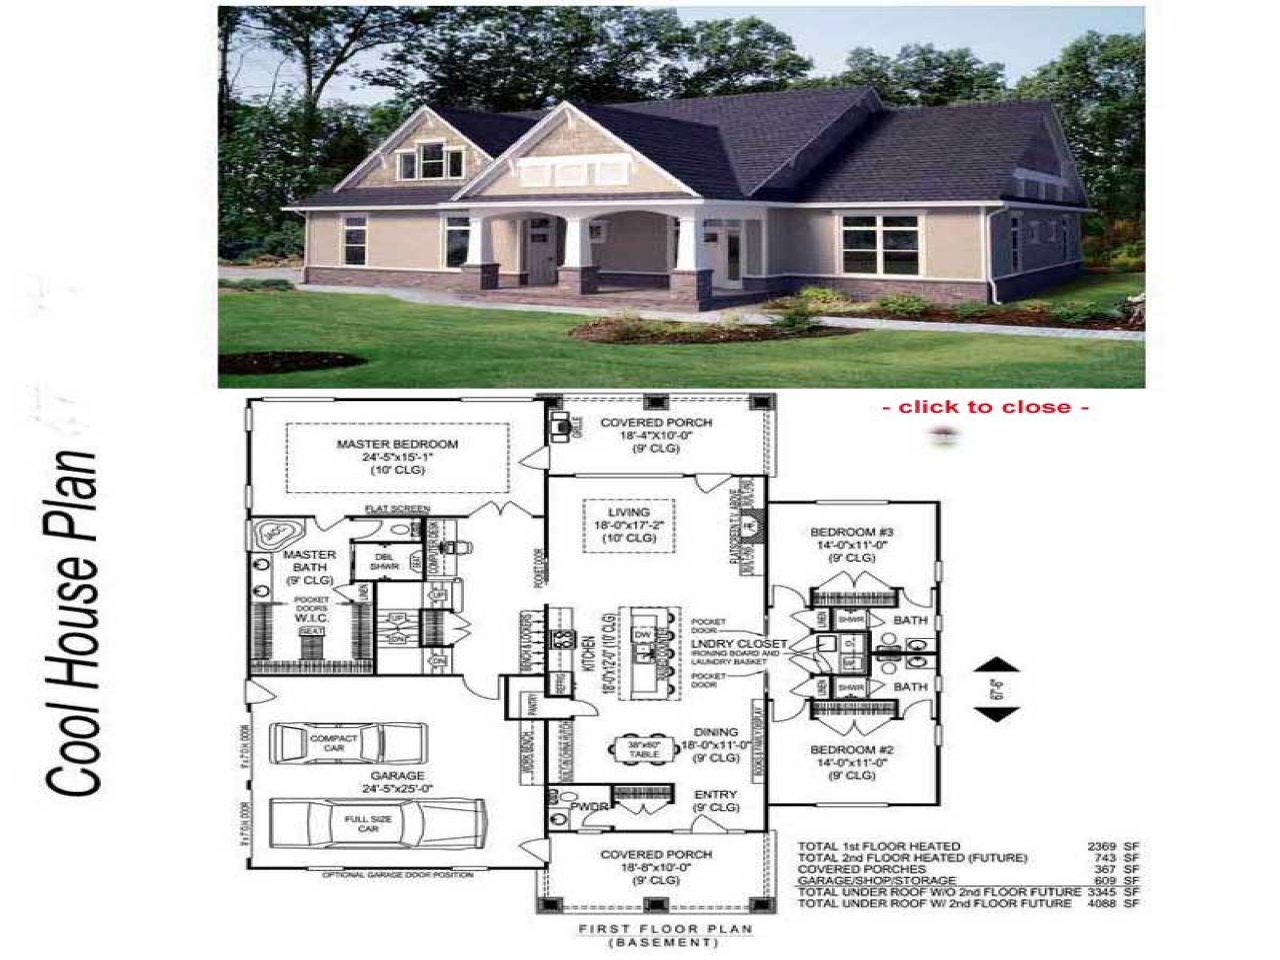 Mediterranean style homes bungalow style homes floor plans for Floor plans for mediterranean style homes